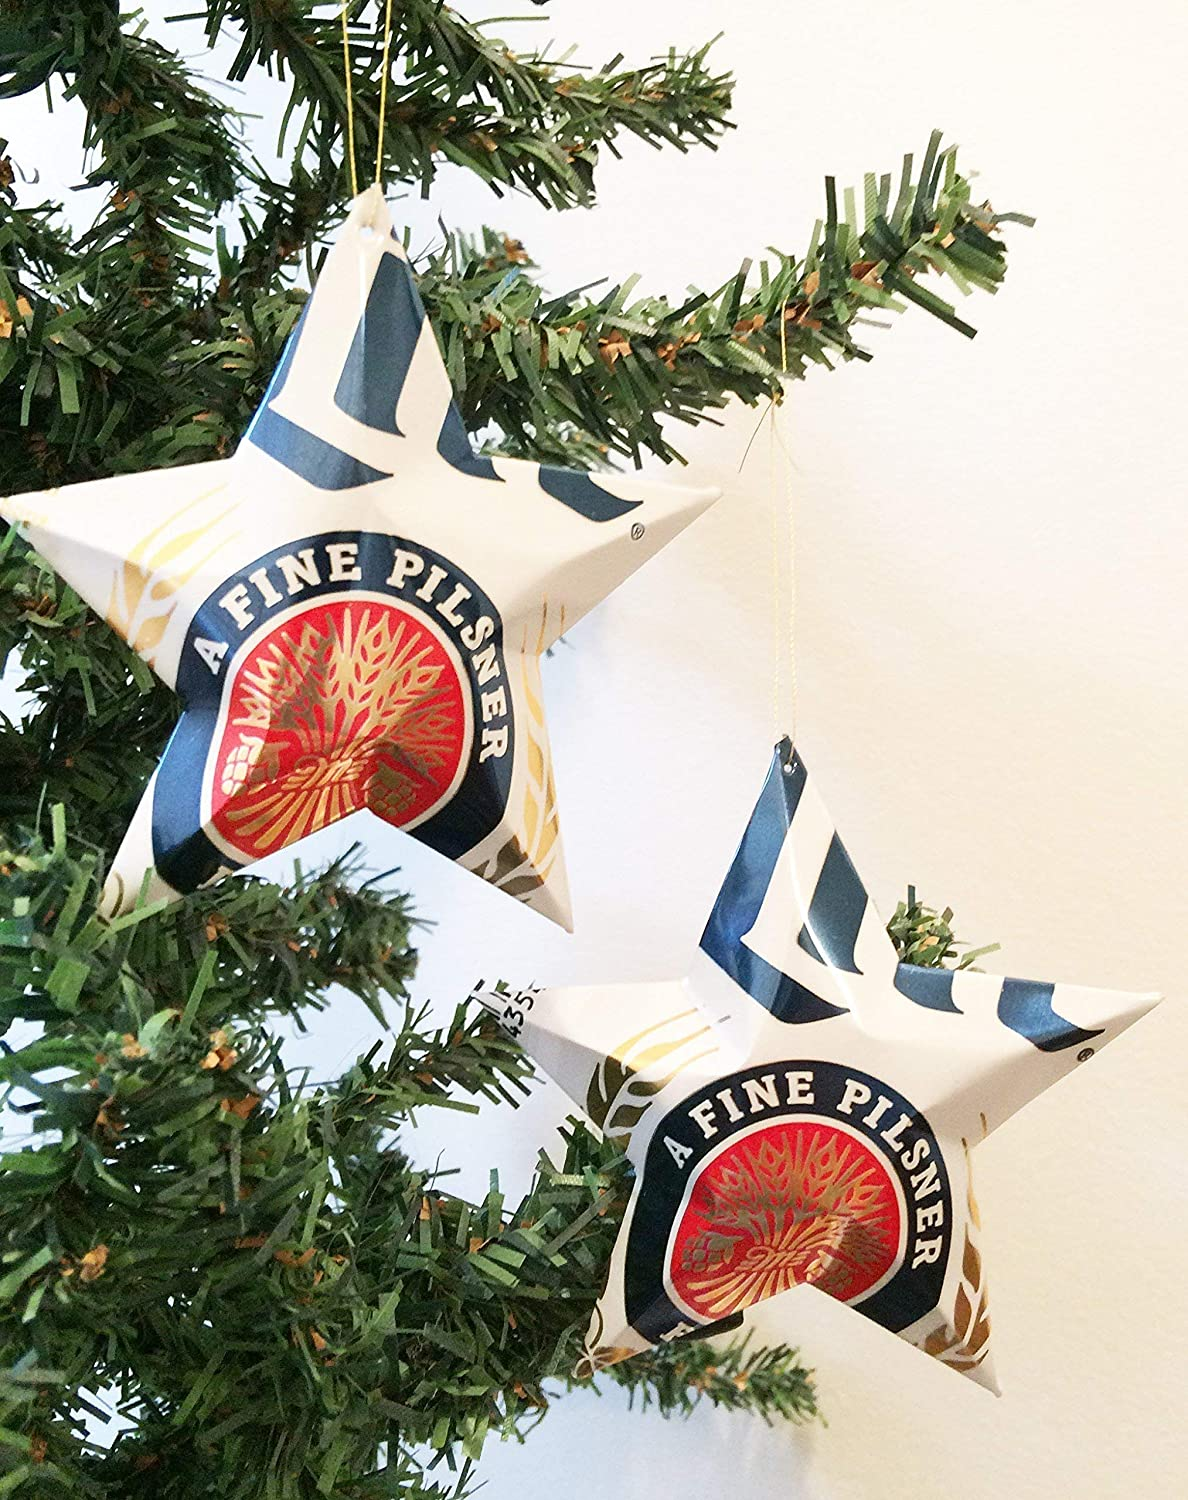 Michelob Ultra Pure Gold Shandy Star Ornament Christmas Chrismukkah Recycled Upcycled Beer Can craft Beer